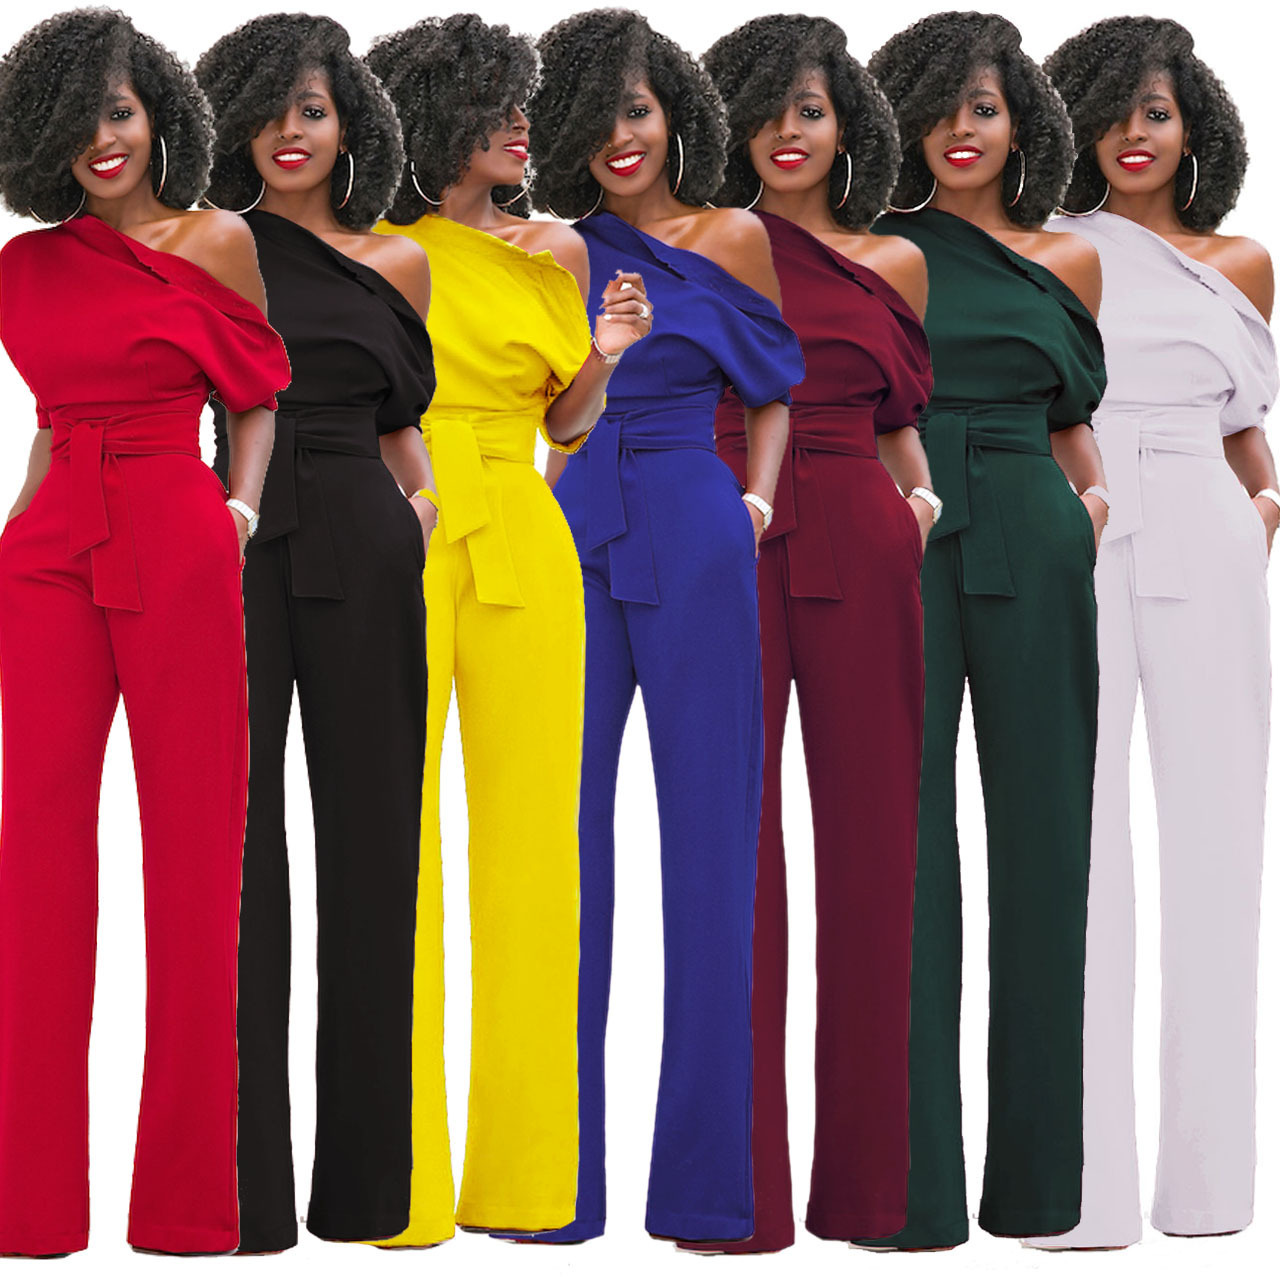 Independent Station Hot Selling Women's Classic Solid Color Trimmed Collar And Button One-piece Wide-Leg Pants